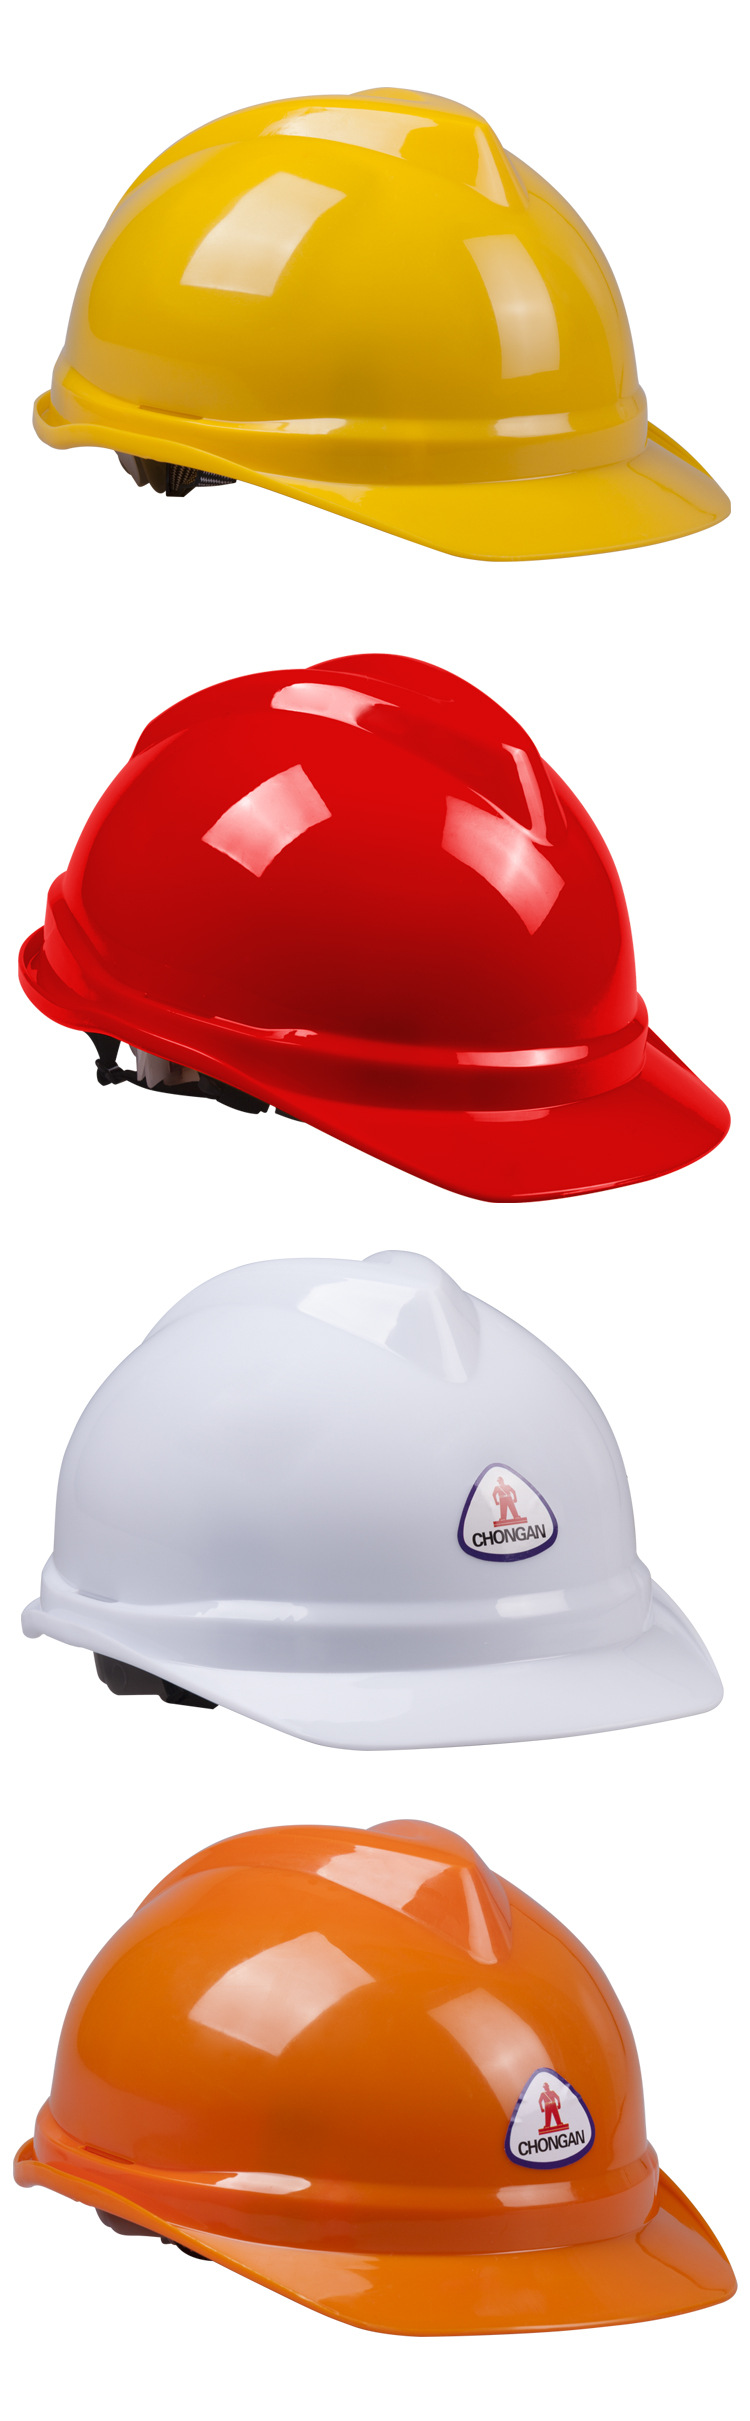 TZYA-88B Construction PE V-type Safety Helmet Personal Protective Equipment